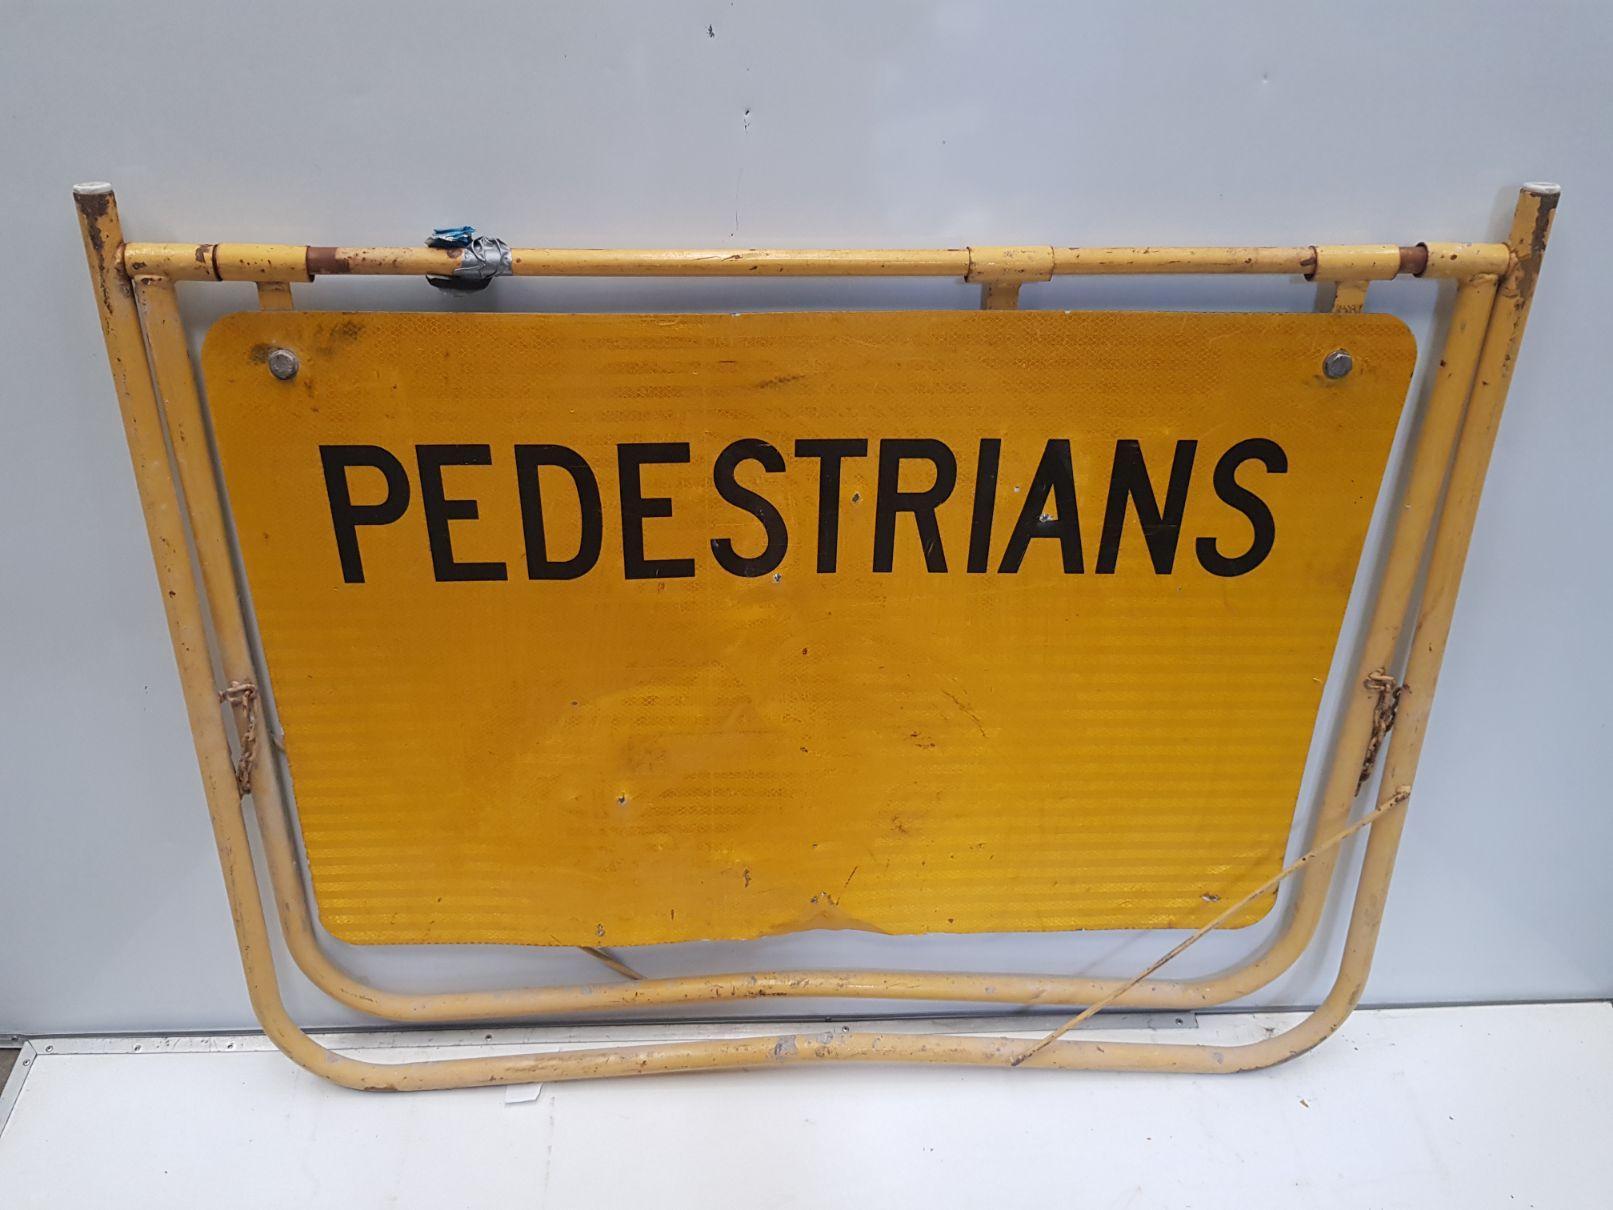 Pedestrians Swing Stand Sign.jpg